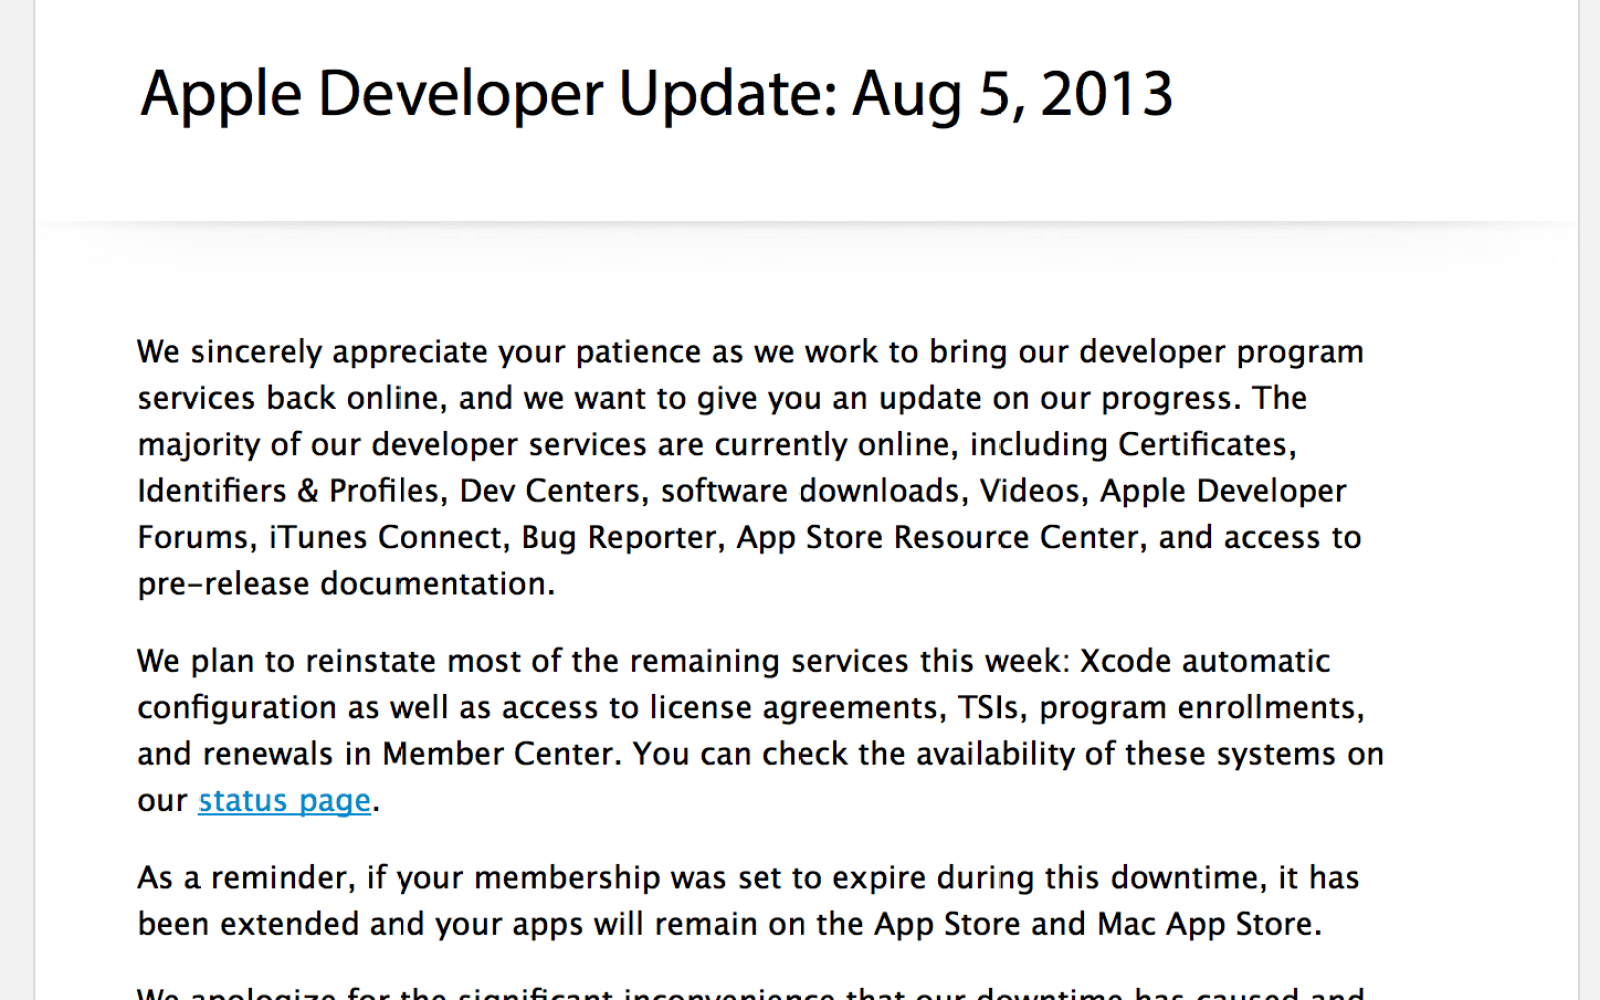 Apple sends out developer update: planning to restore most